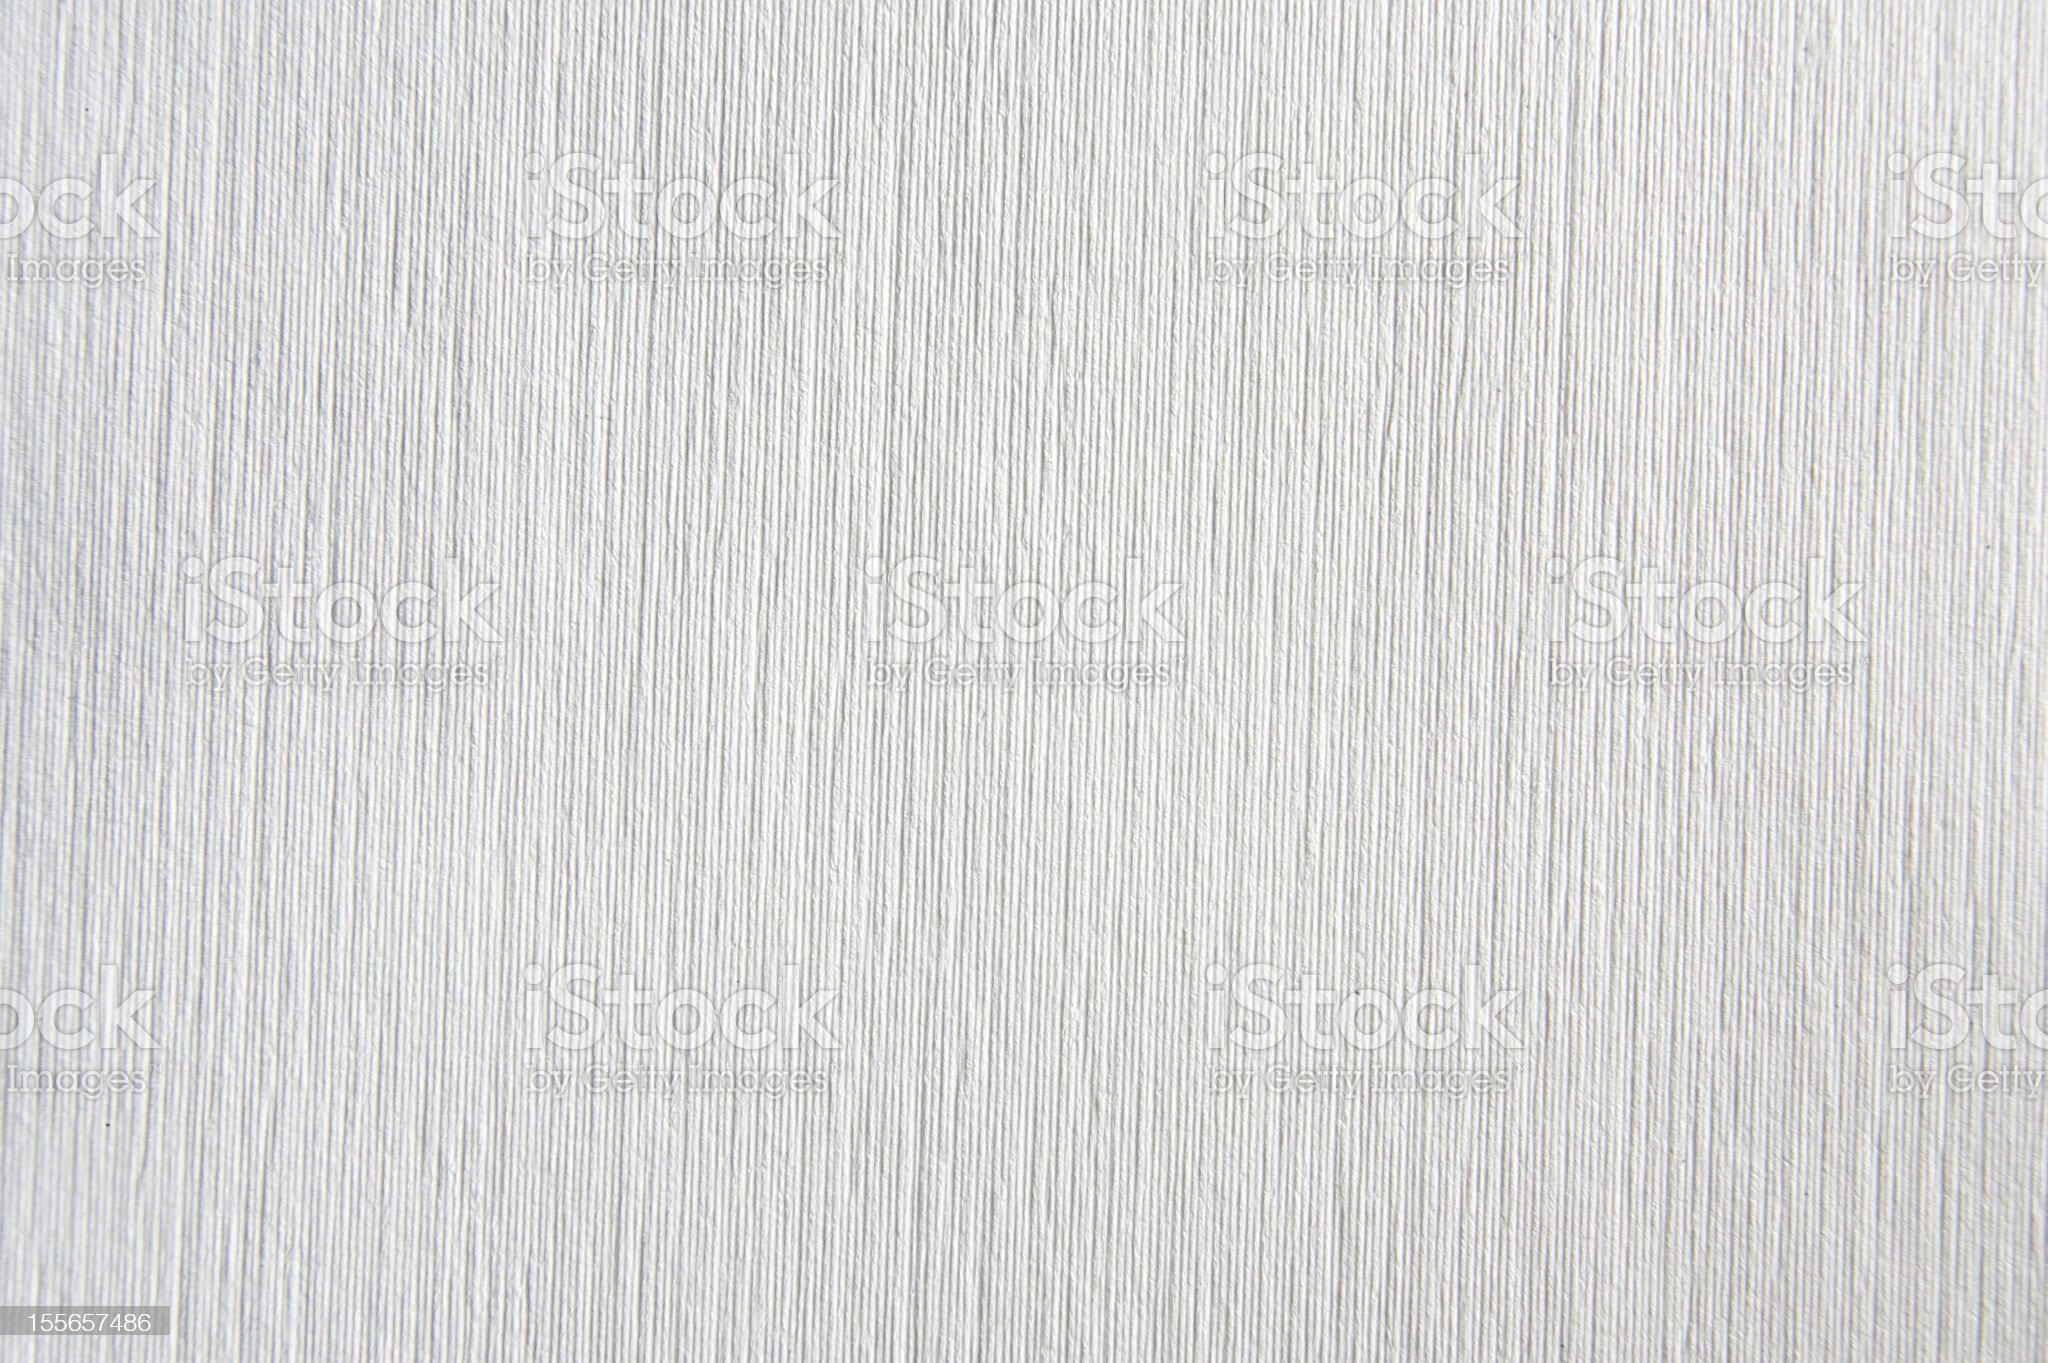 background textured wallpaper royalty-free stock photo